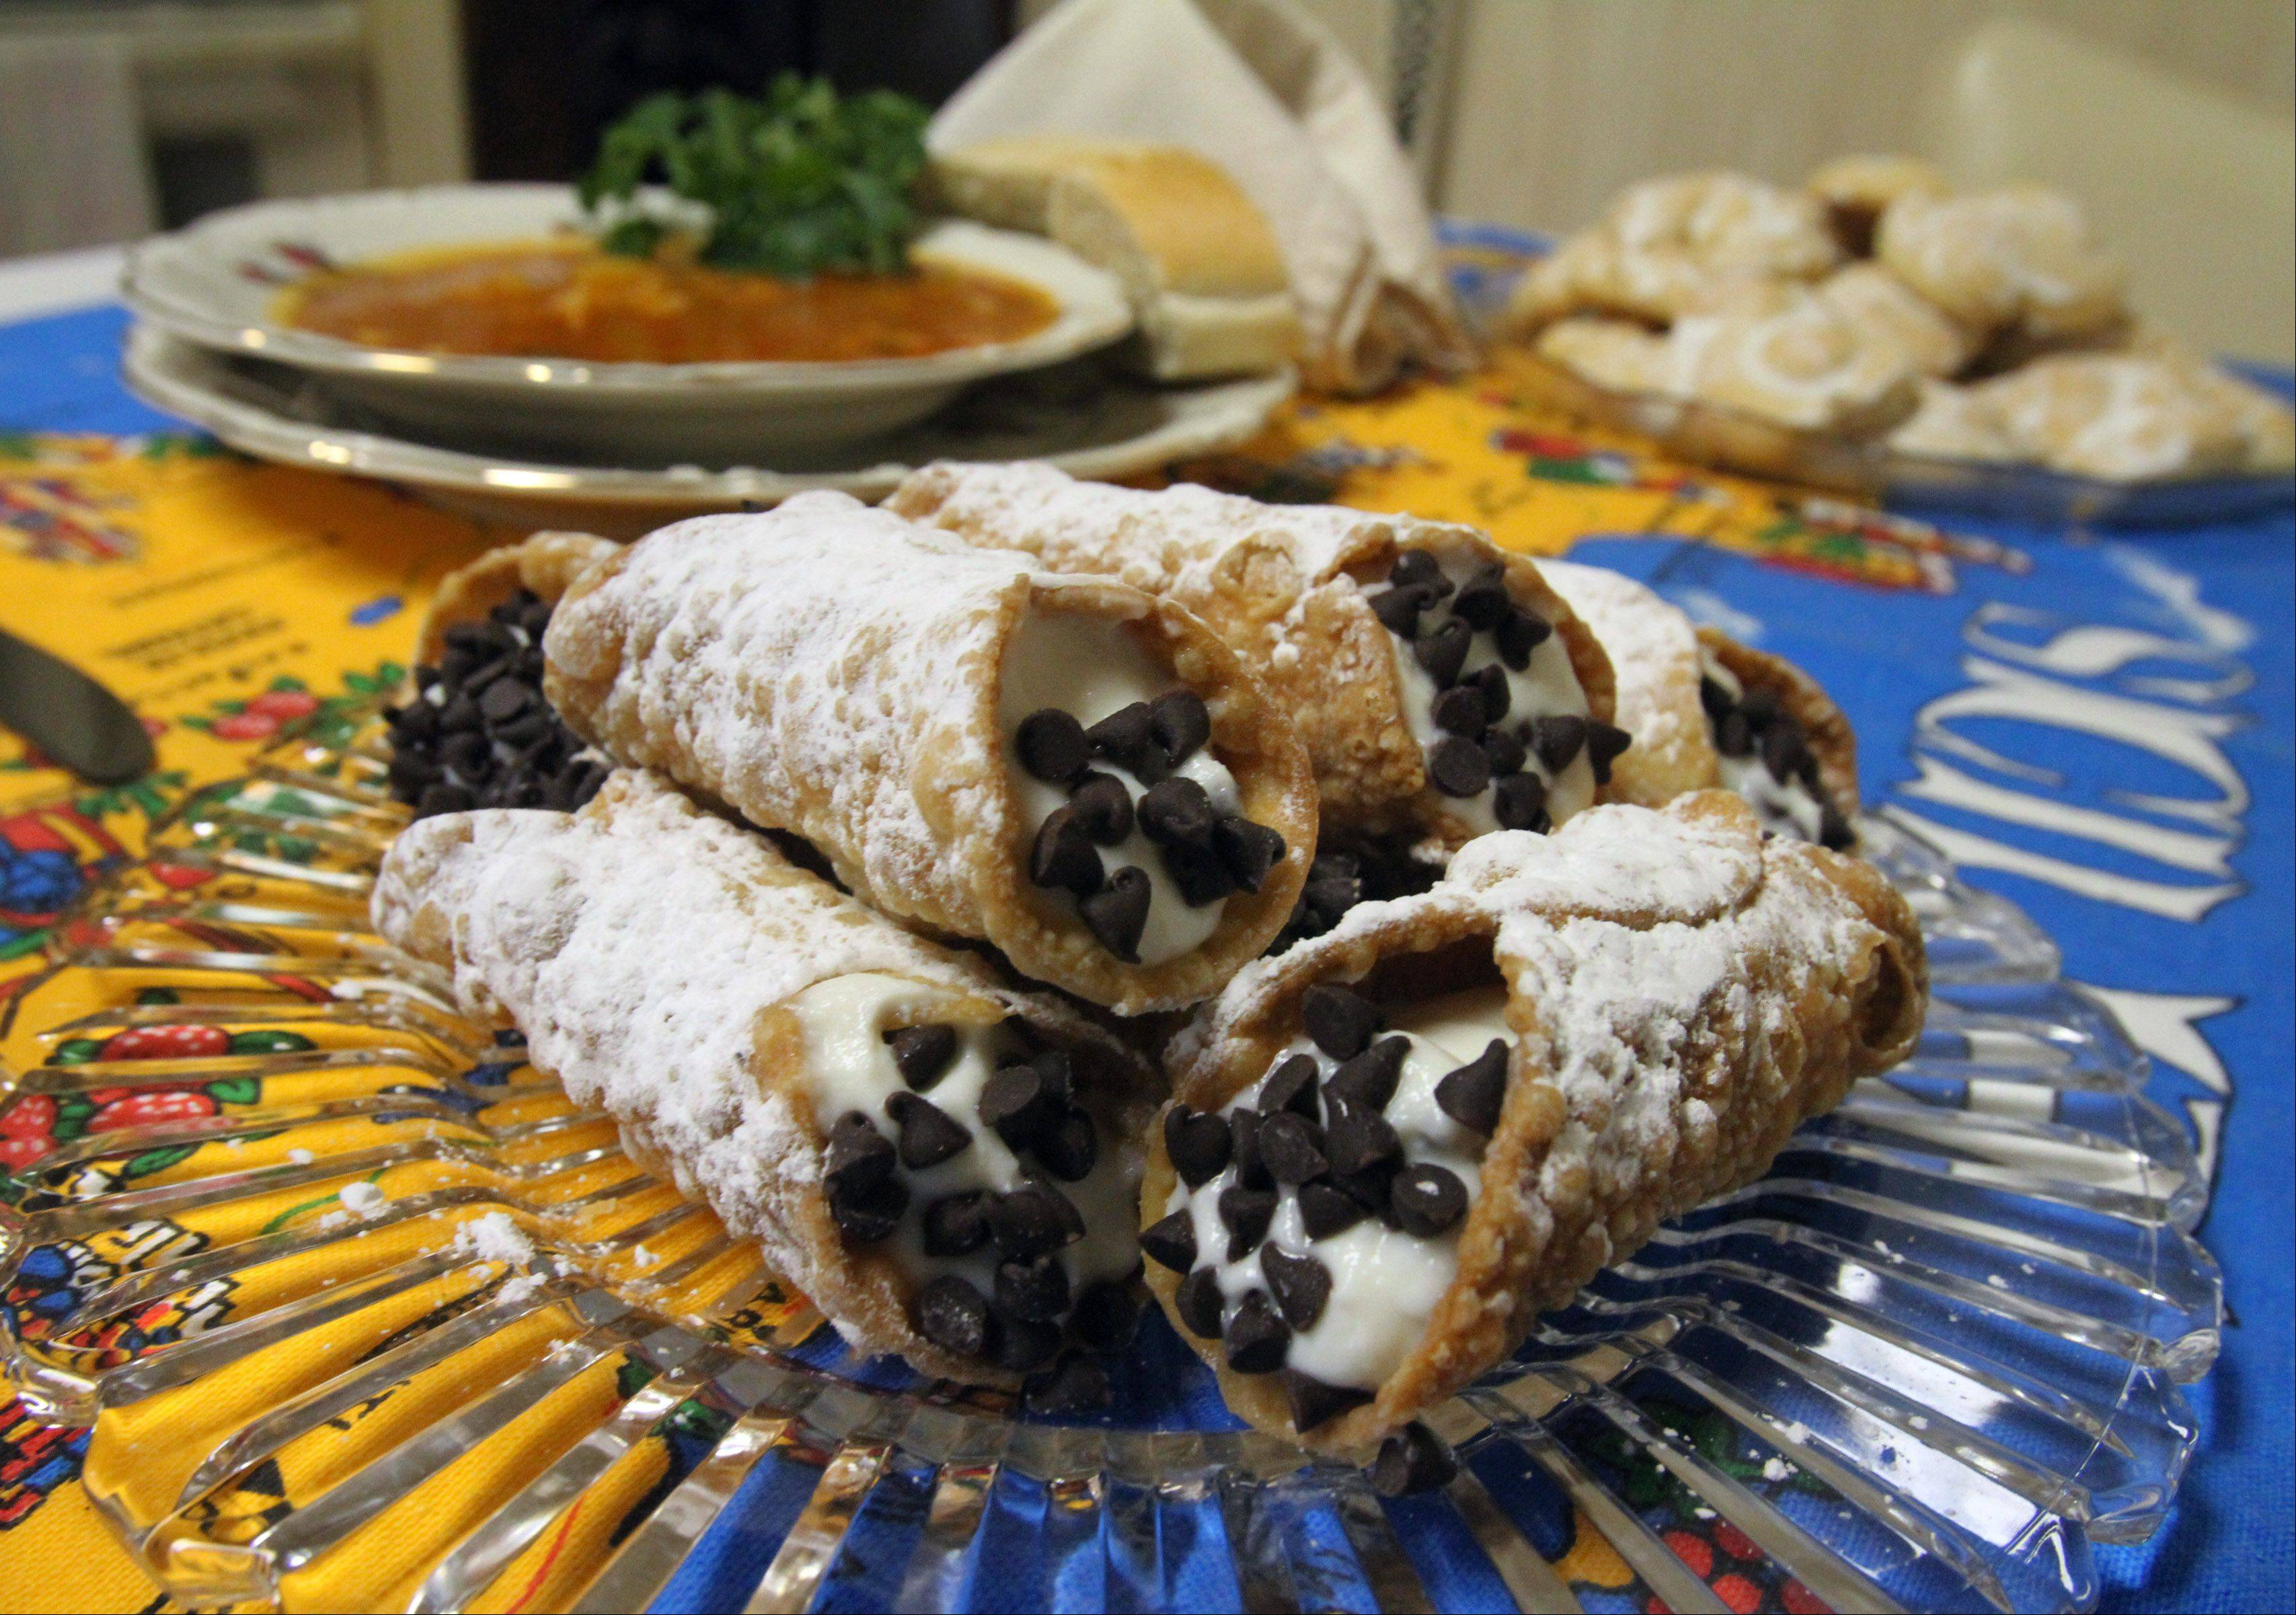 Cinnamon oil and vanilla powder flavor the filling in Angie Gergen�s homemade cannolis.